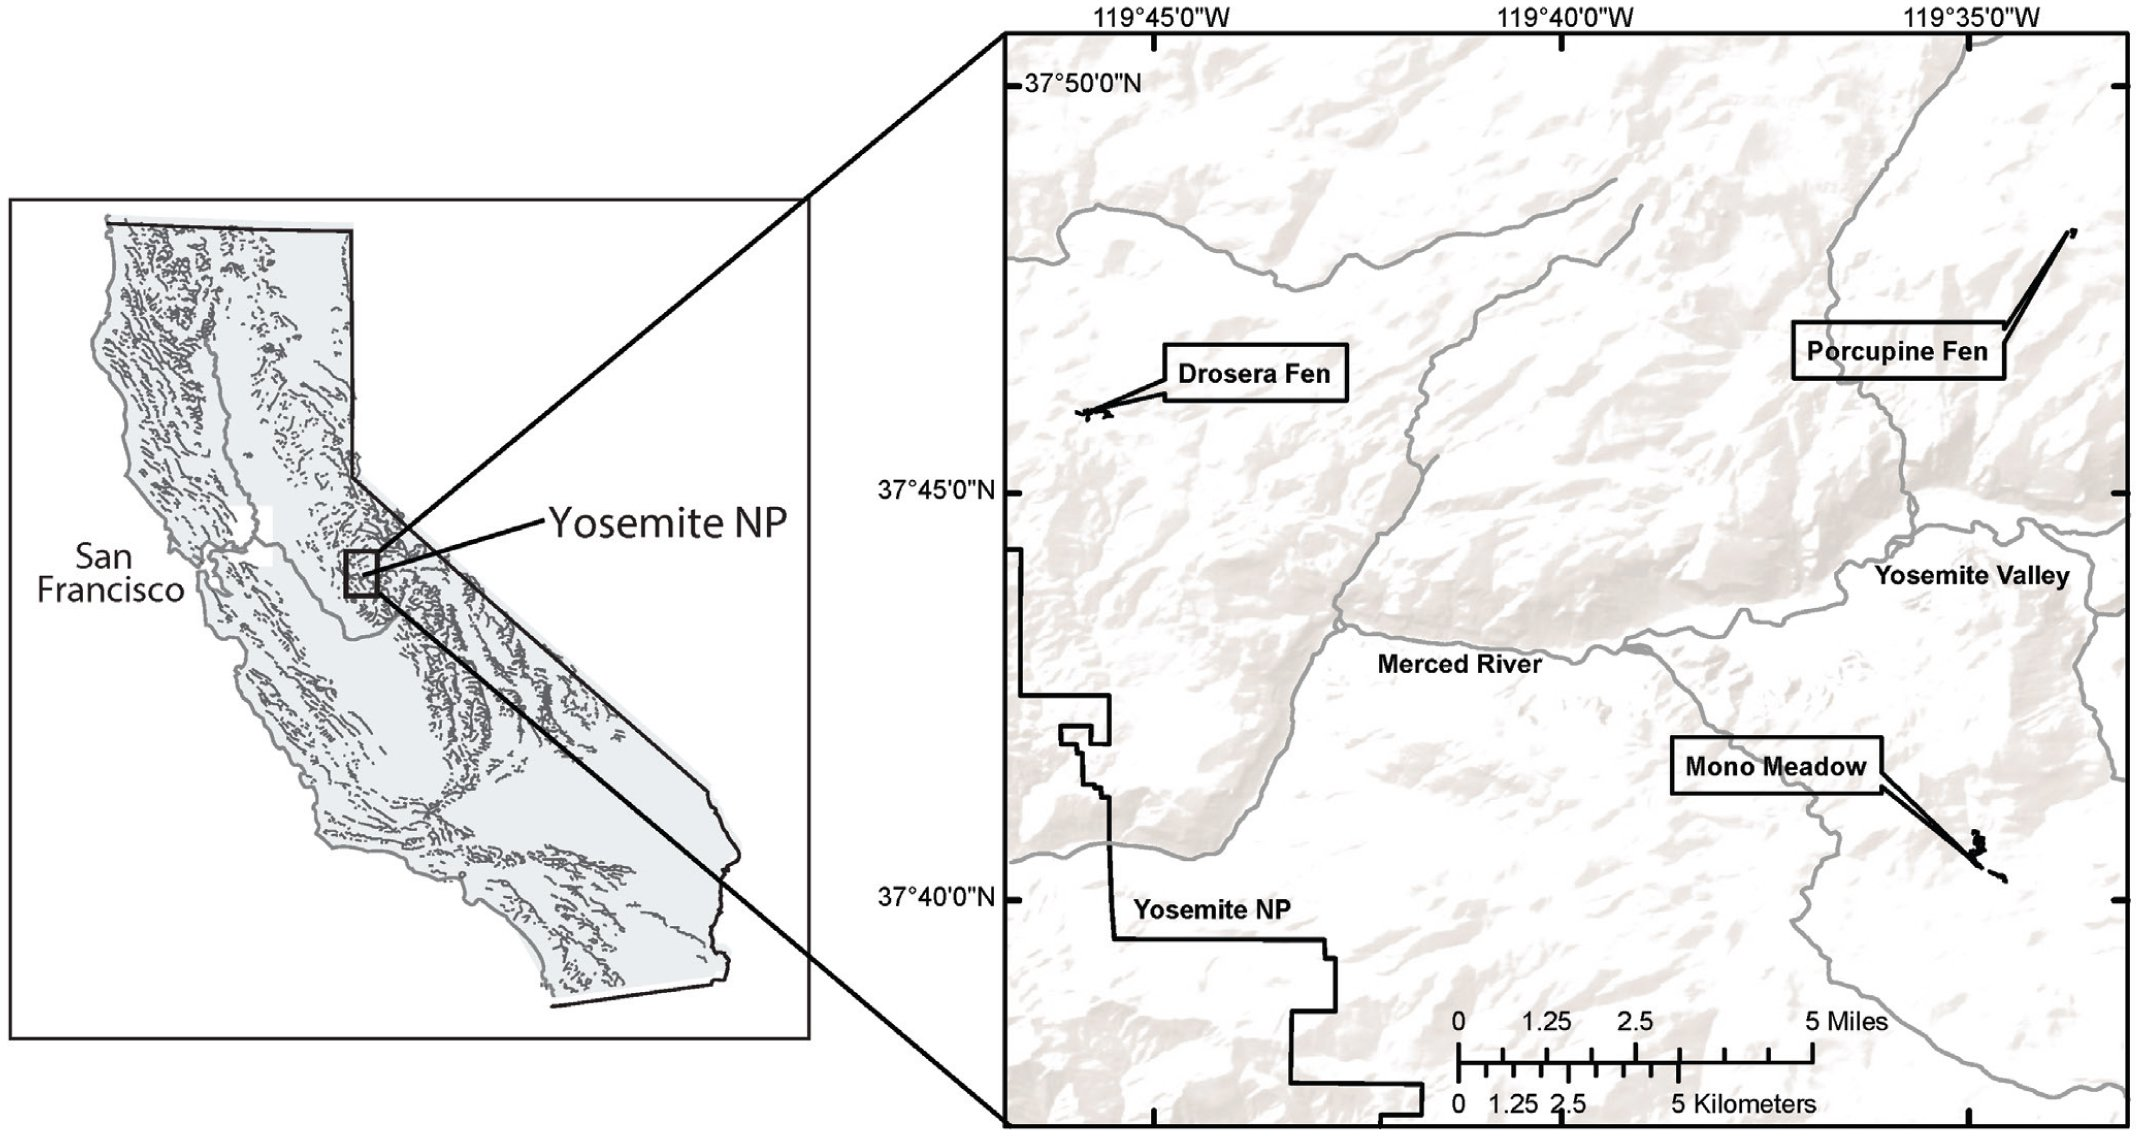 Recent Rates of Carbon Aculation in Montane Fens of Yosemite ... on map of smokey mountains national park, map of oc beaches, map of burney falls, map of bx, map of united states, map of zephyr, map of national parks of america, map of grand canyon, map of taft point, map of devil's postpile, map of eldorado canyon, map of crest, map of willows, map of casey county, map of big thicket, map of california, map of muir trail, map of ione, map of slot canyons, map of national parks in oregon,